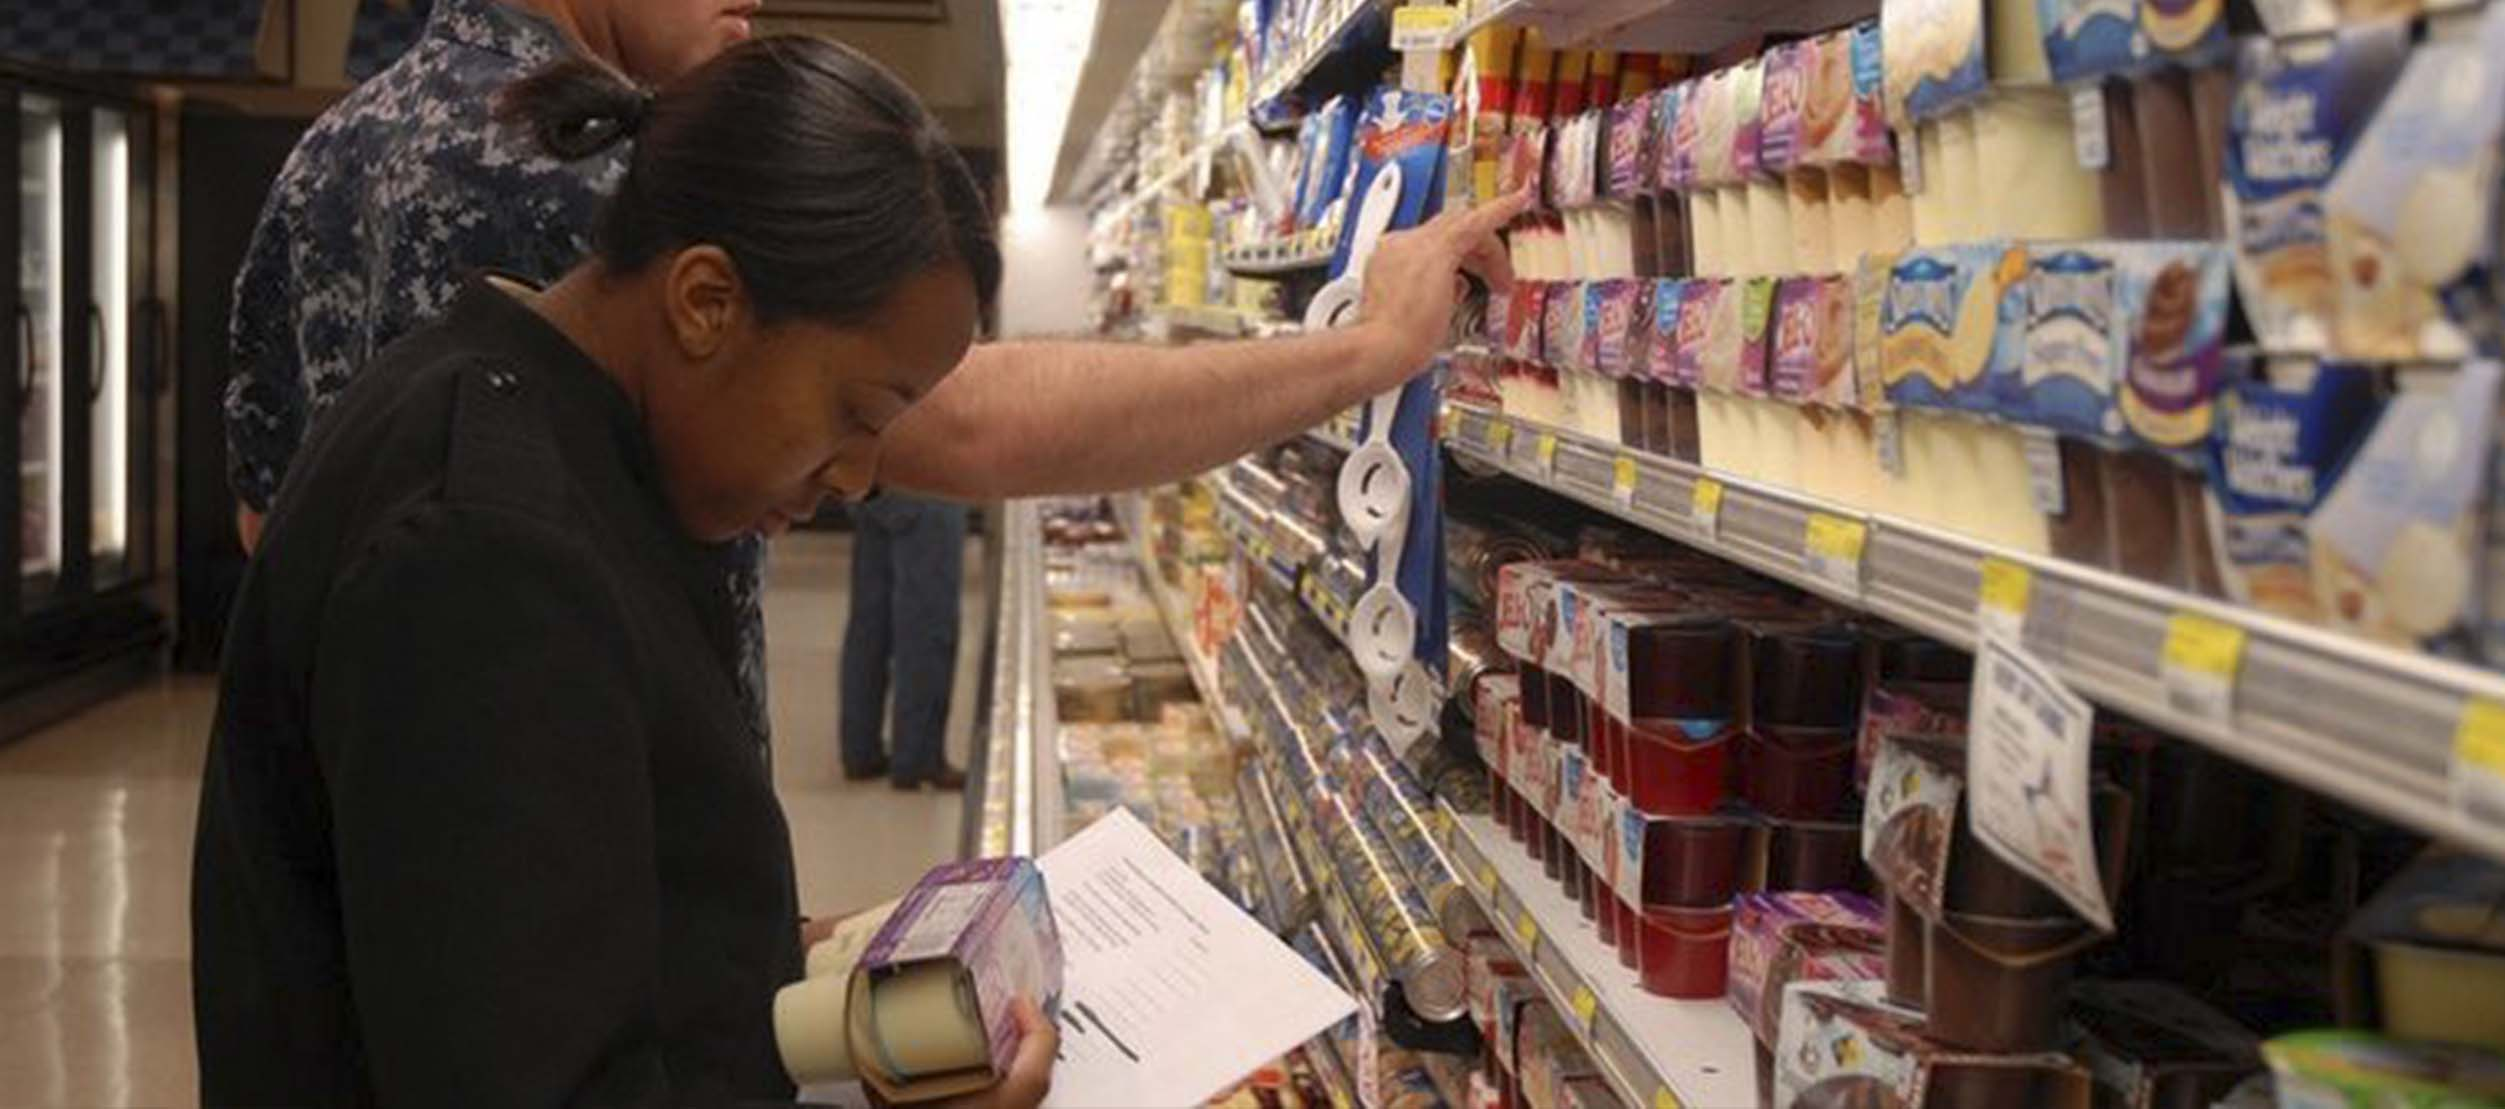 Commissary price change benchmarks 3 things to know